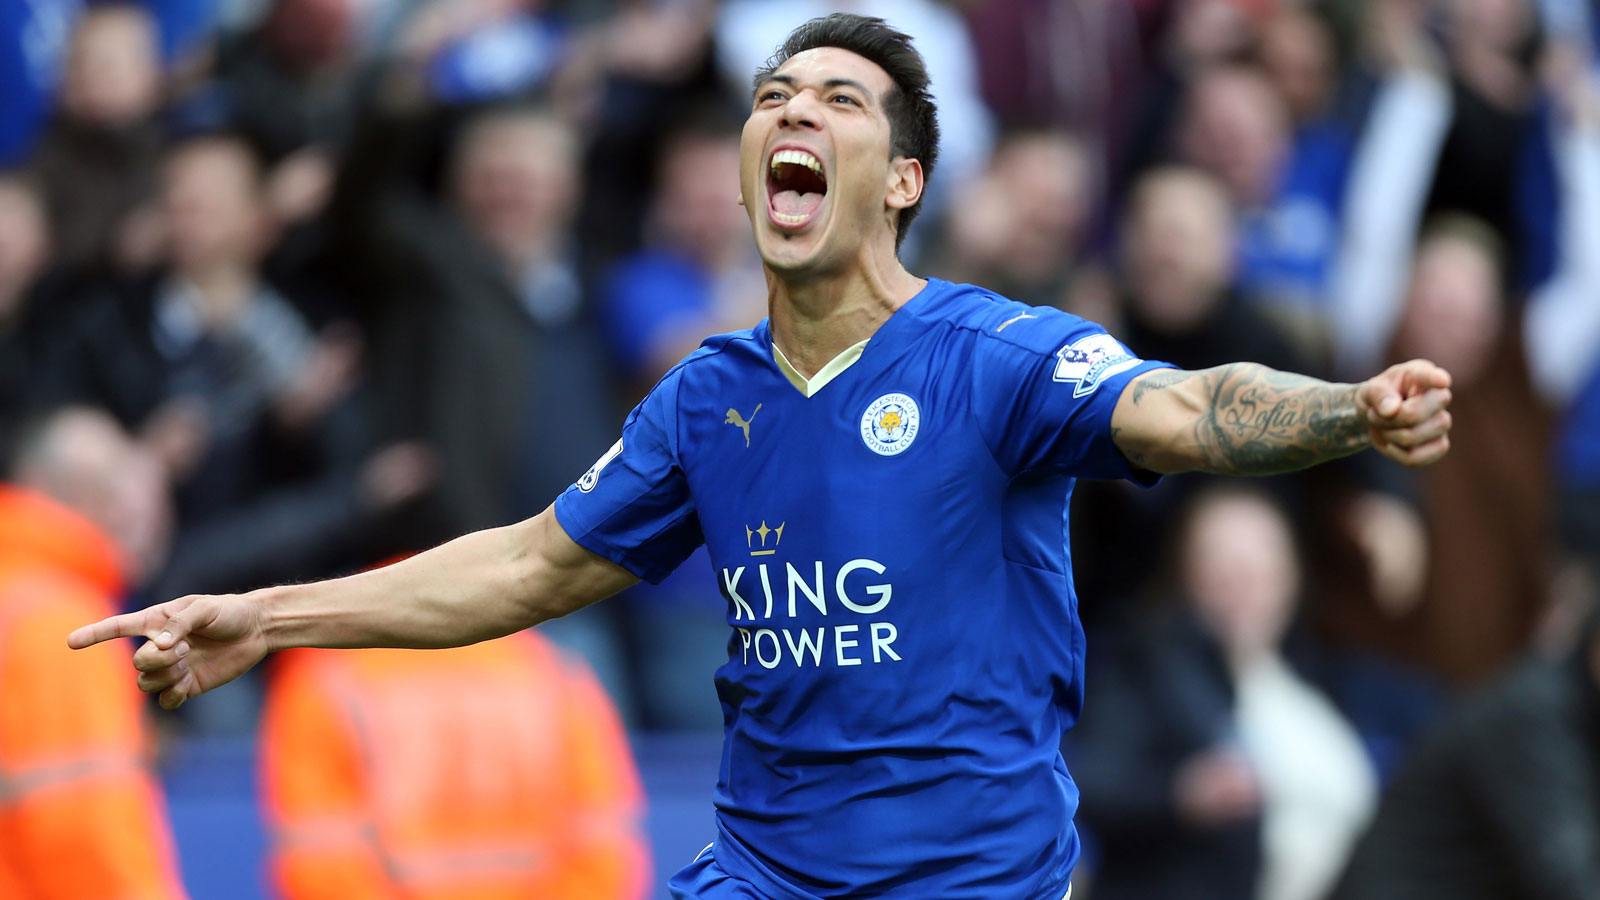 With leading scorer Jamie Vardy suspended because of a referee altercation in the previous match vs. West Ham, Leonardo Ulloa stepped into the starting lineup and scored twice in a 4-0 rout of Swansea City. A Tottenham draw the following day put Leicester